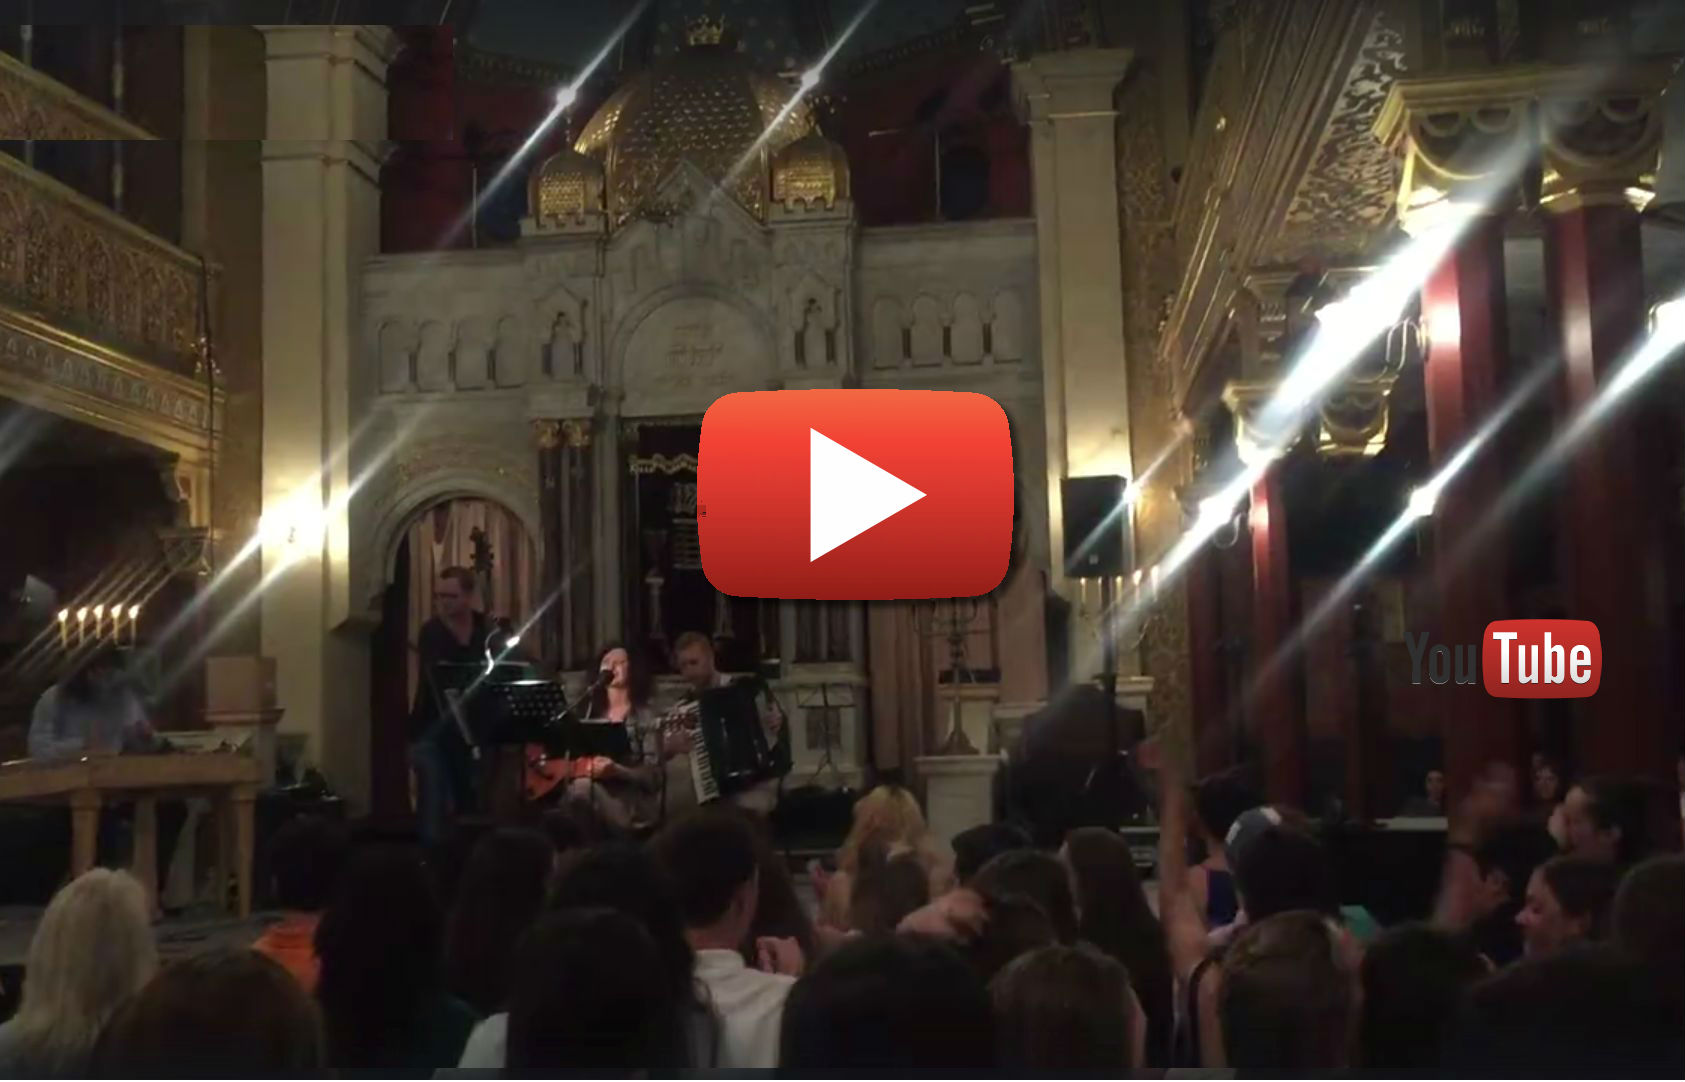 Musical Shabbat with NFTY, Rabbi Tanya Segal and Mojše Band - Krakow 2016 (click to watch)